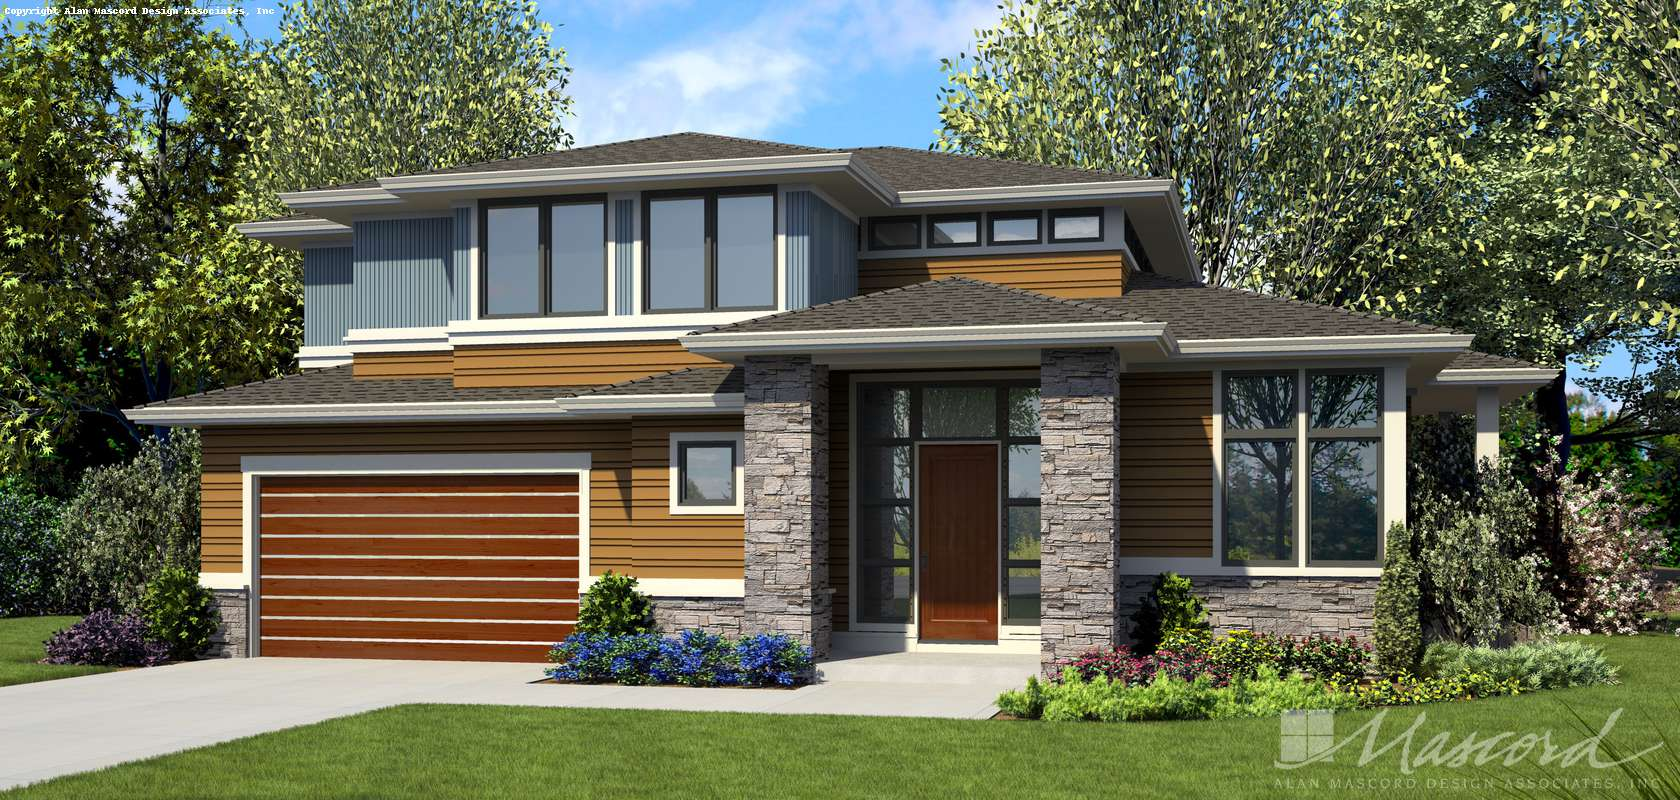 Mascord House Plan B22217: The